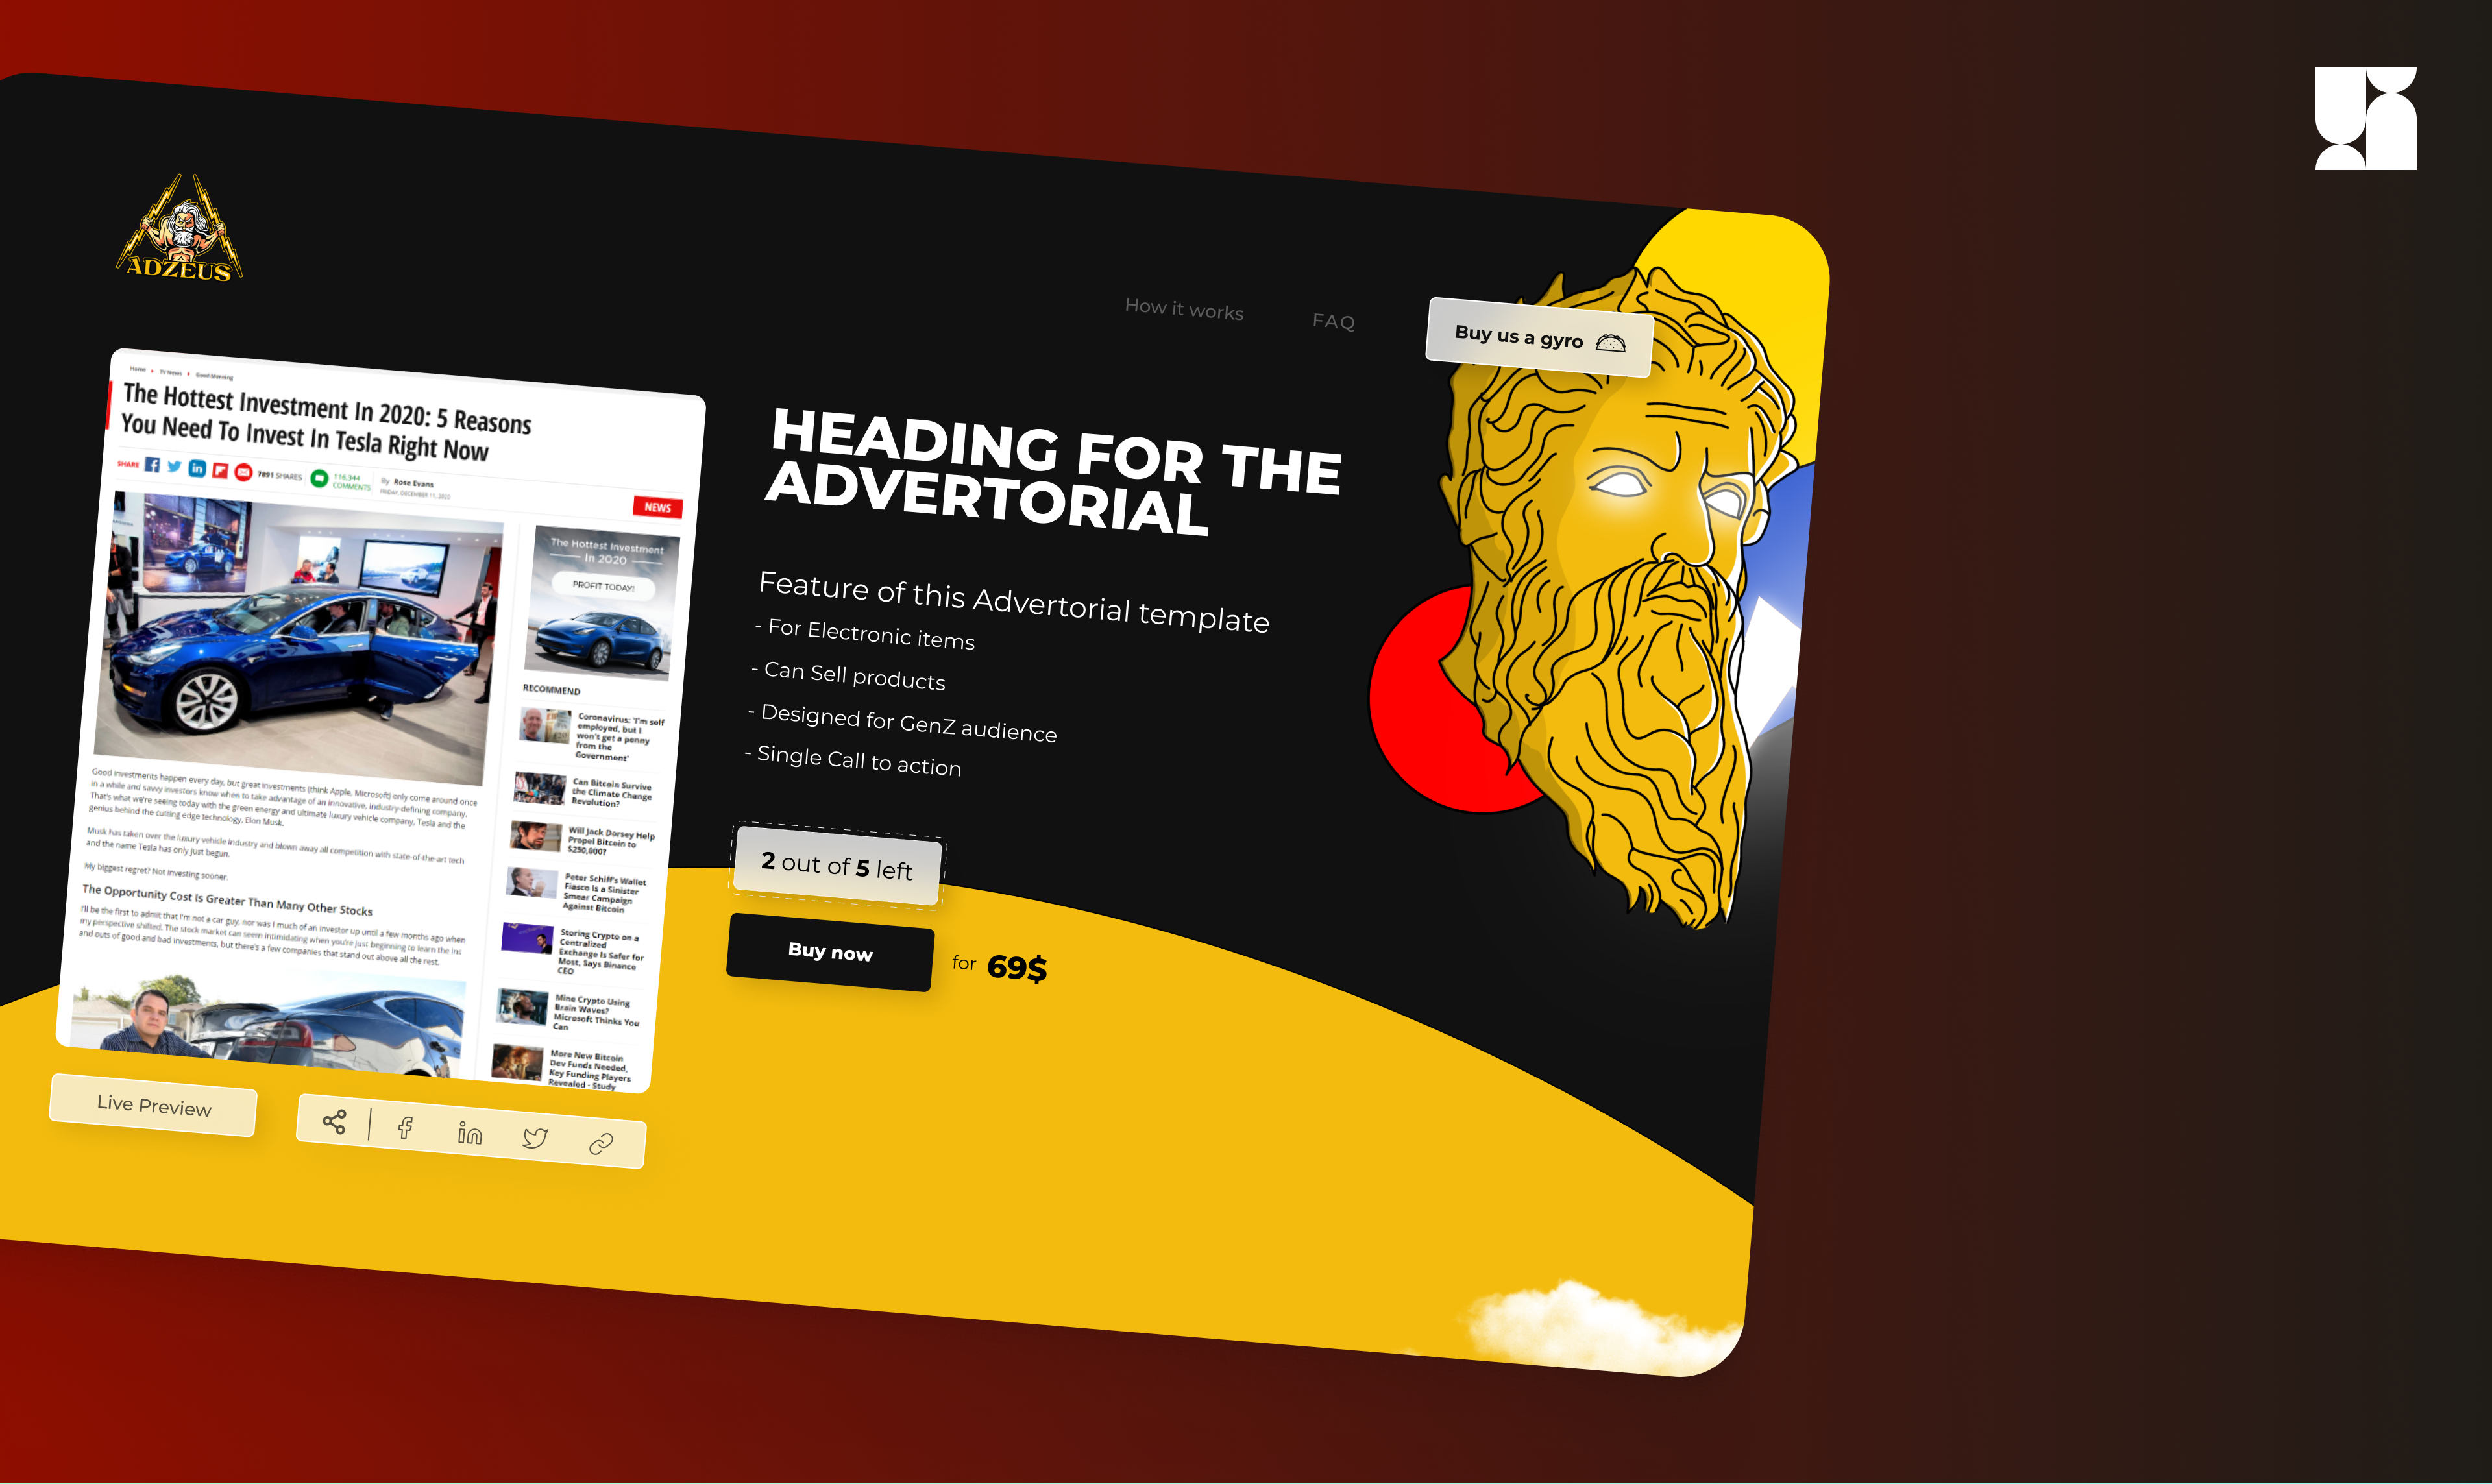 They Sell Advertorial Templates